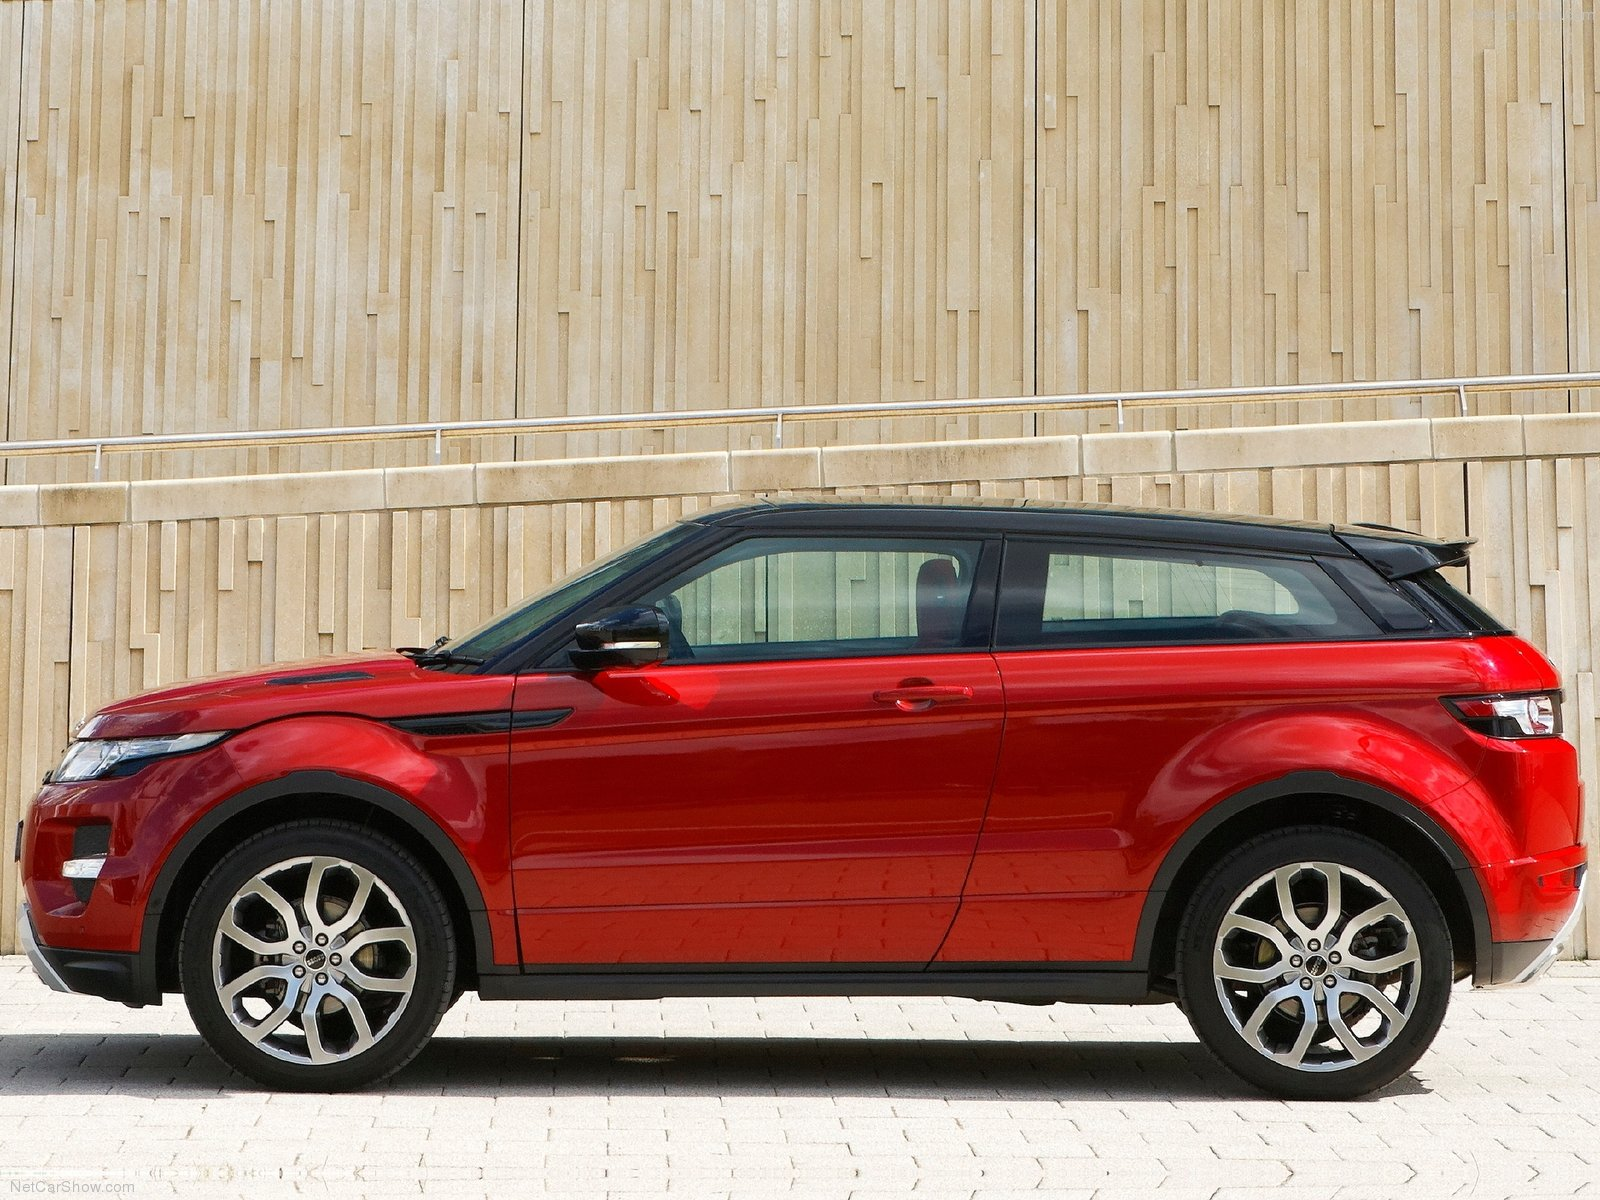 Range Rover Evoque 3 Door Crossover 2012